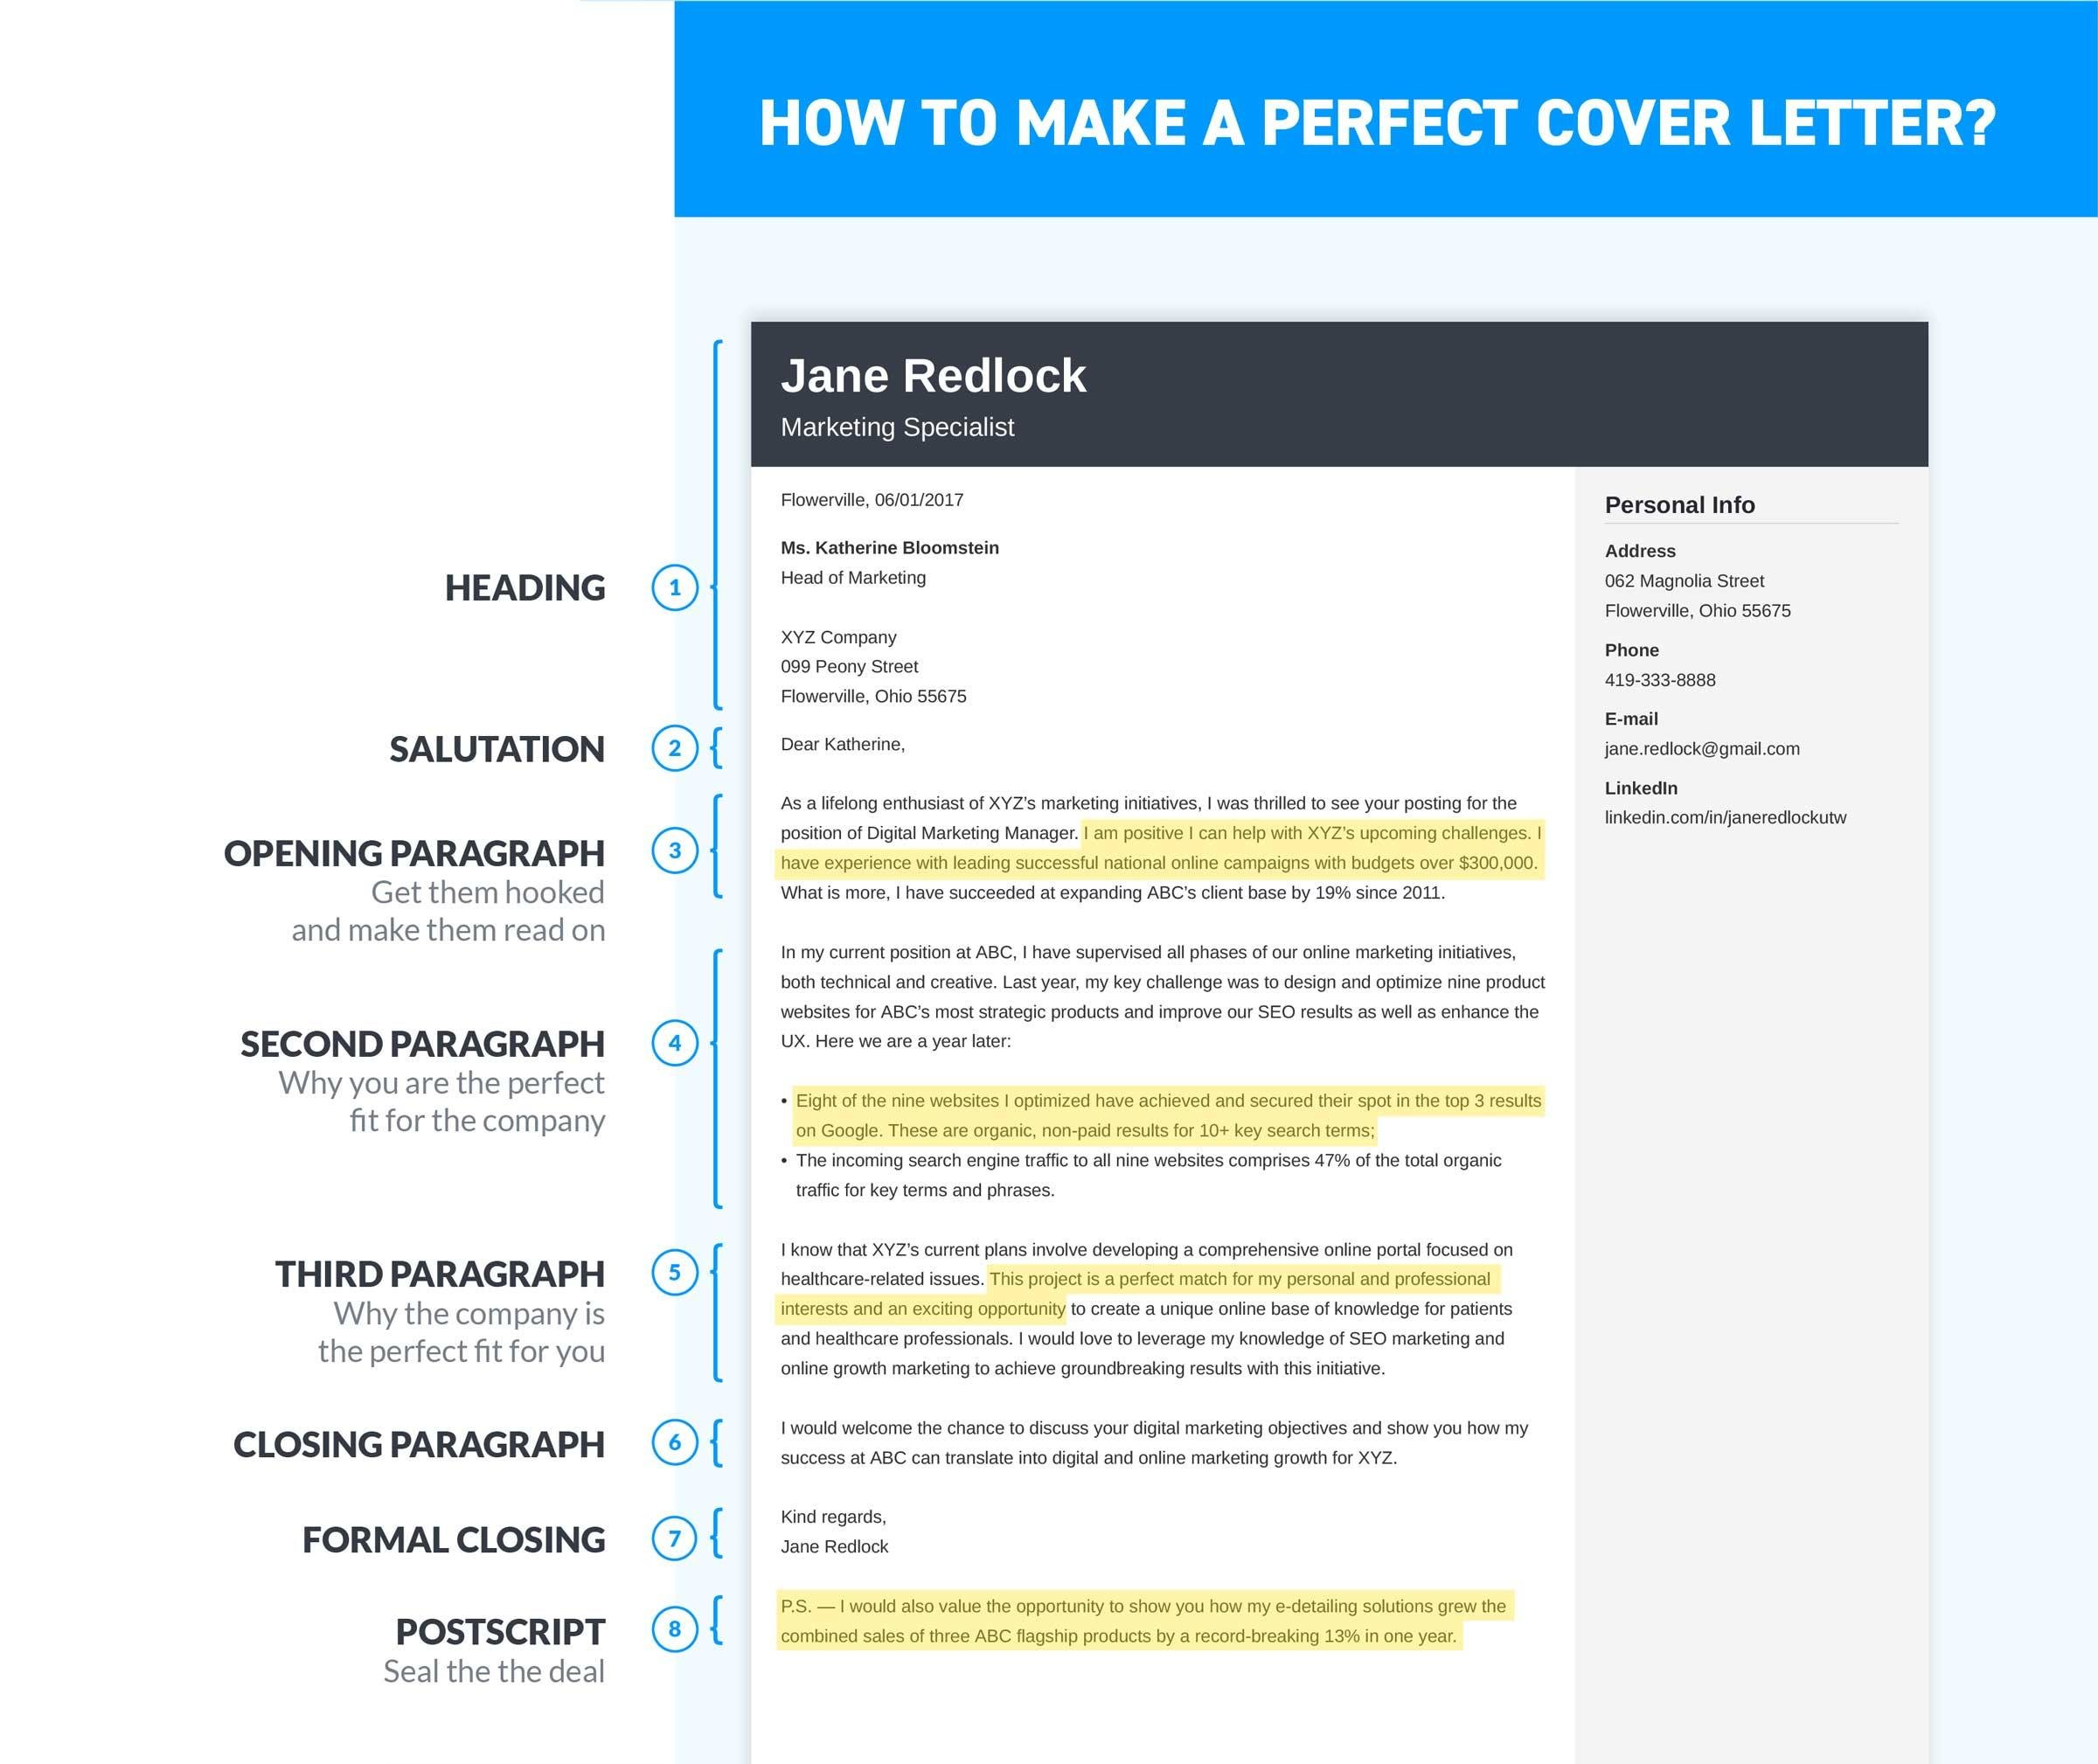 How to write a cover letter in 8 simple steps 12 examples how to make a perfect cover letter infographic altavistaventures Images